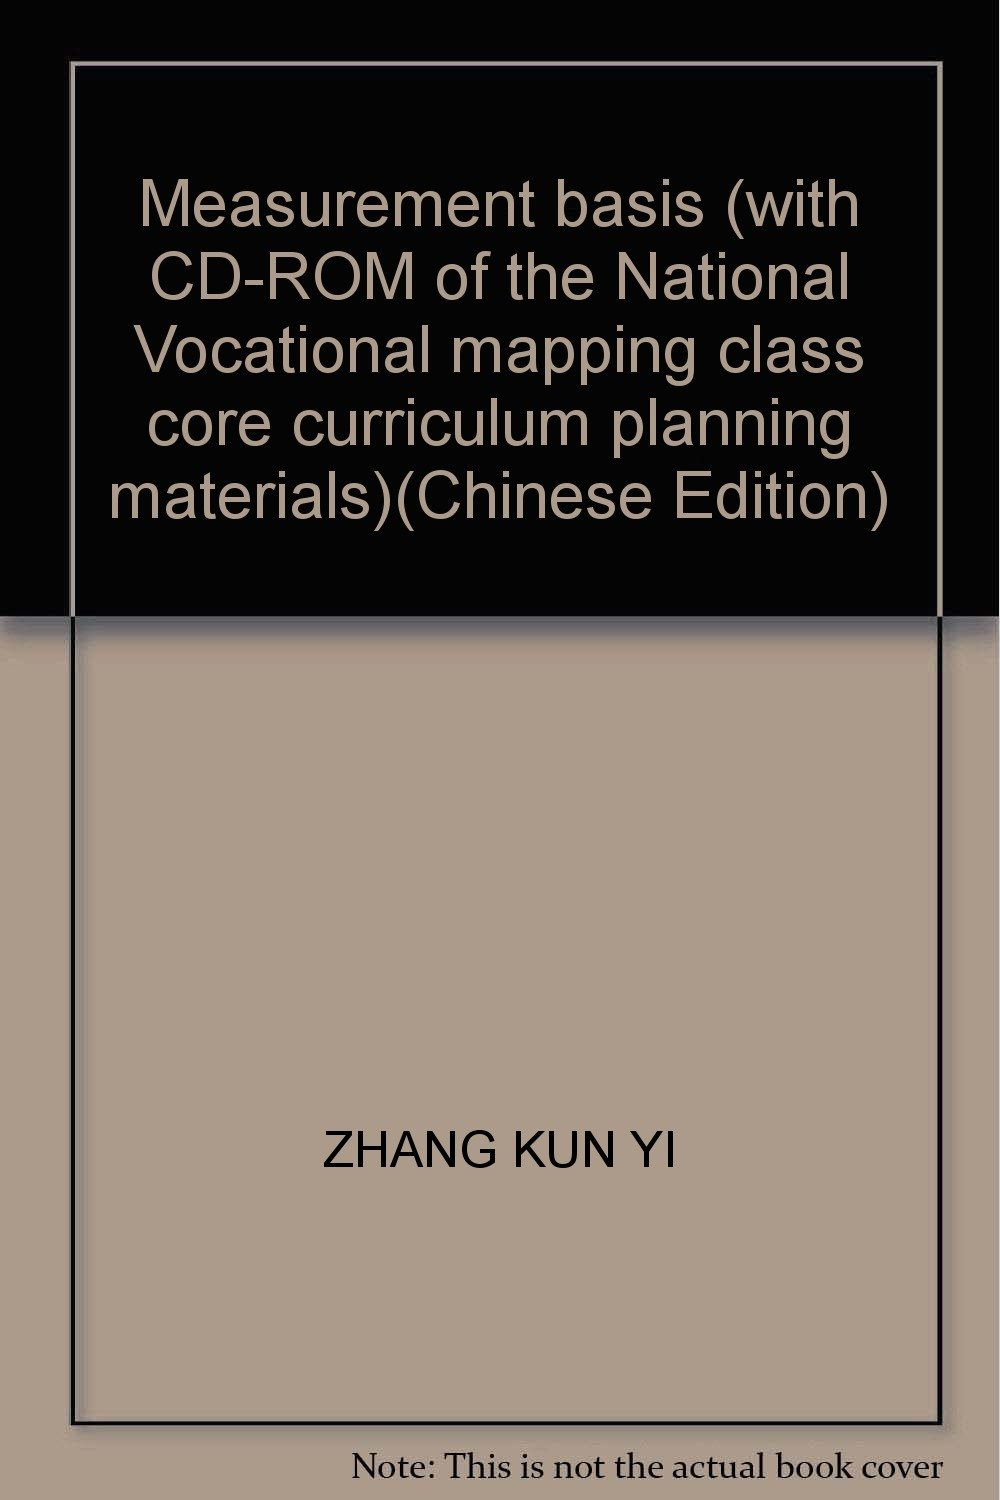 Measurement basis (with CD-ROM of the National Vocational mapping class core curriculum planning materials)(Chinese Edition) PDF